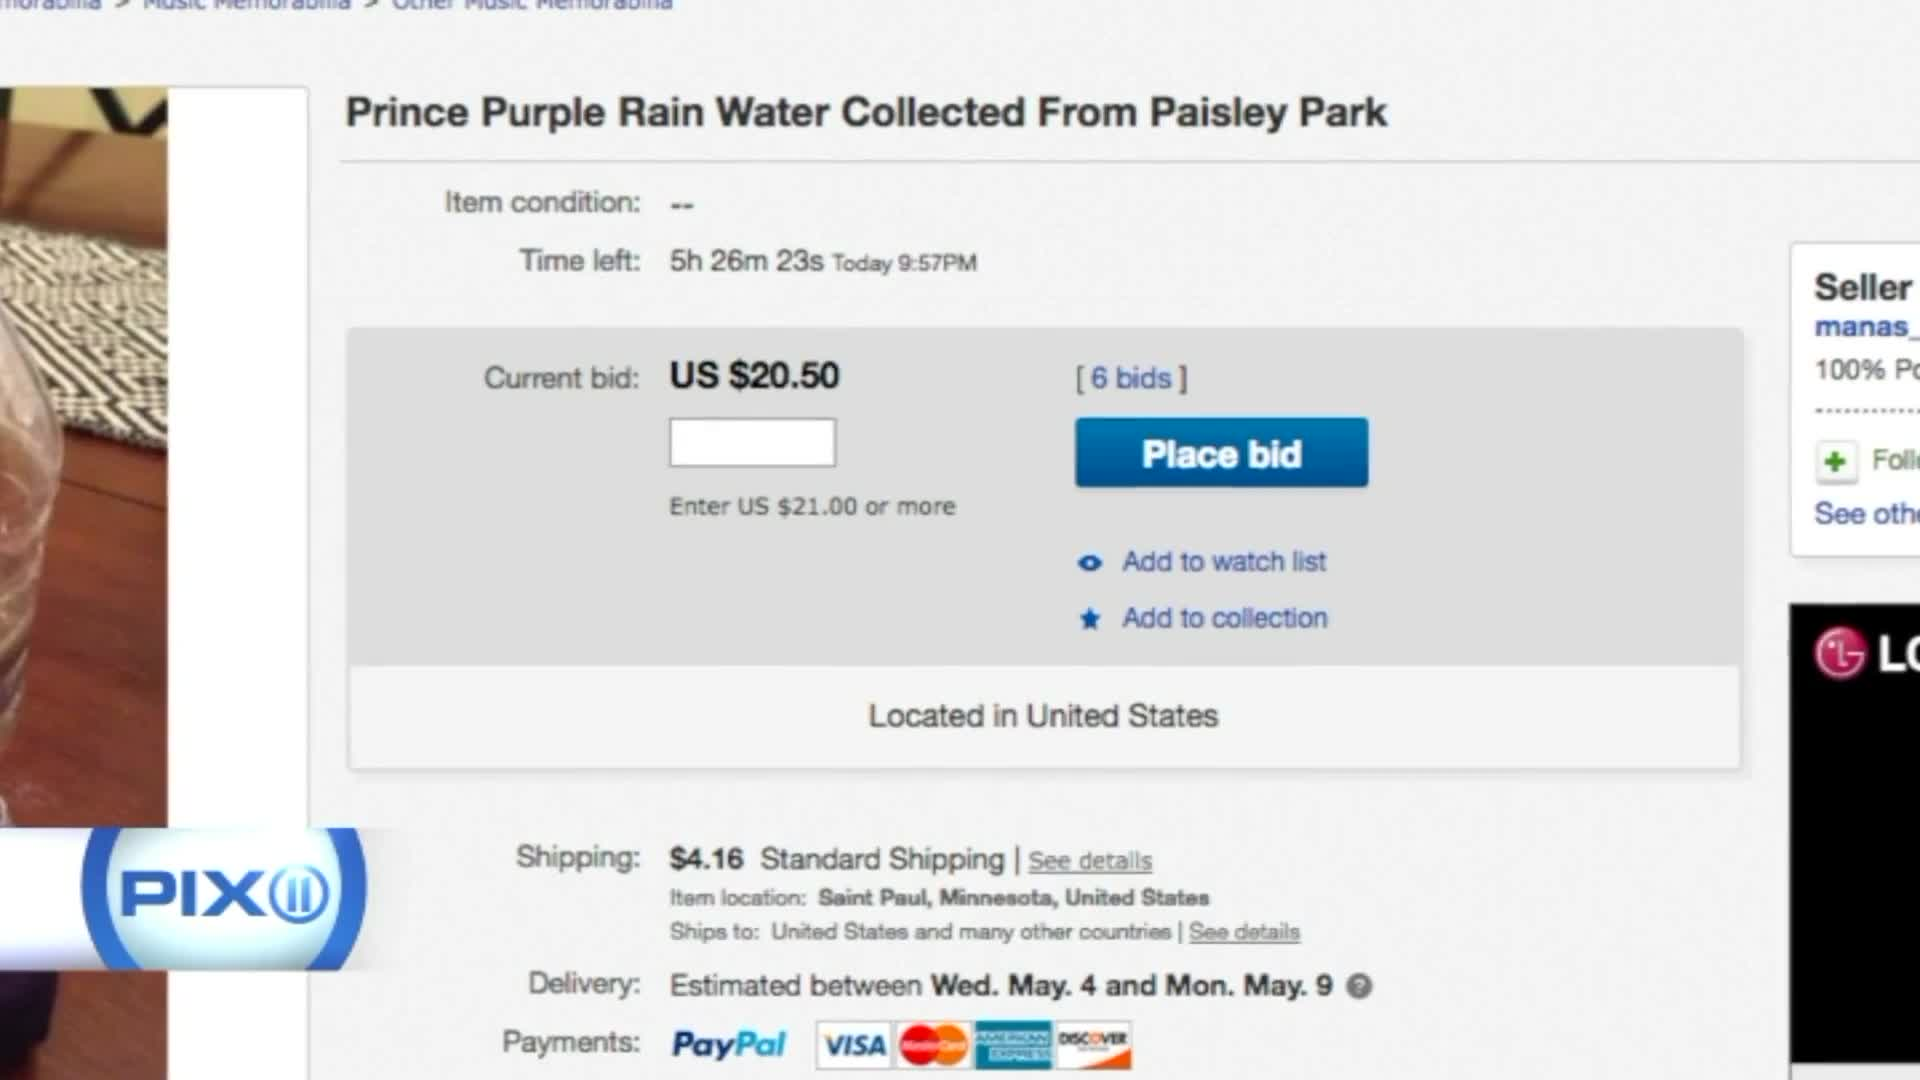 Rain Water From The Day Prince Died Being Sold On Ebay